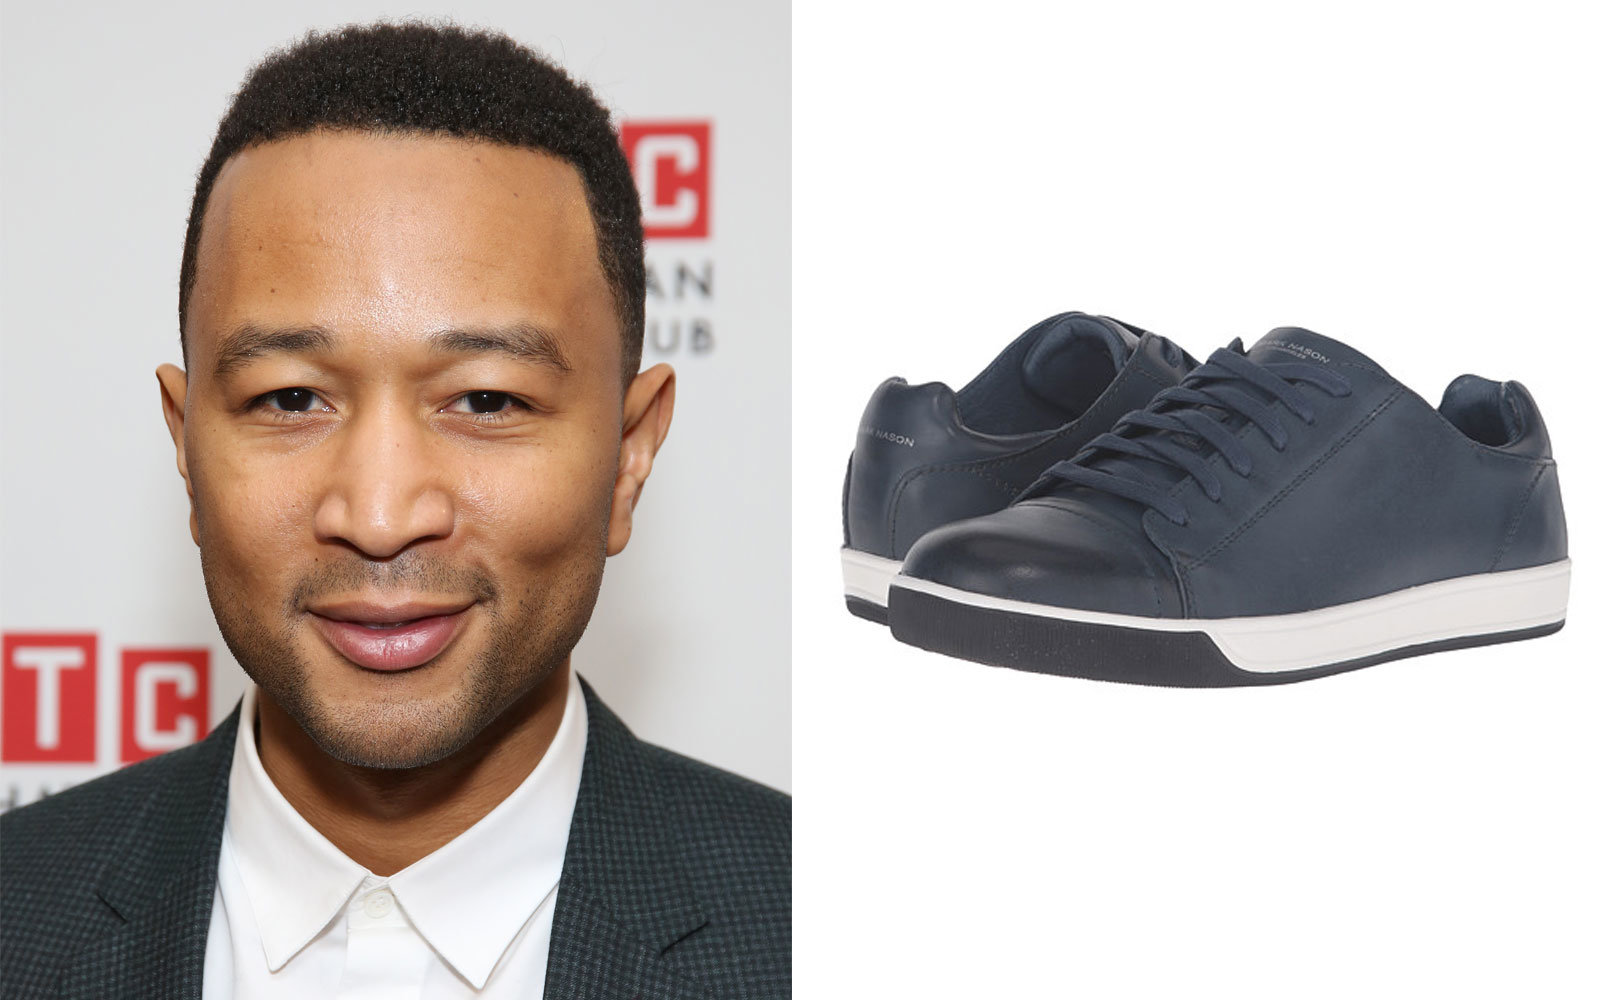 Best Male Celebrity Shoes